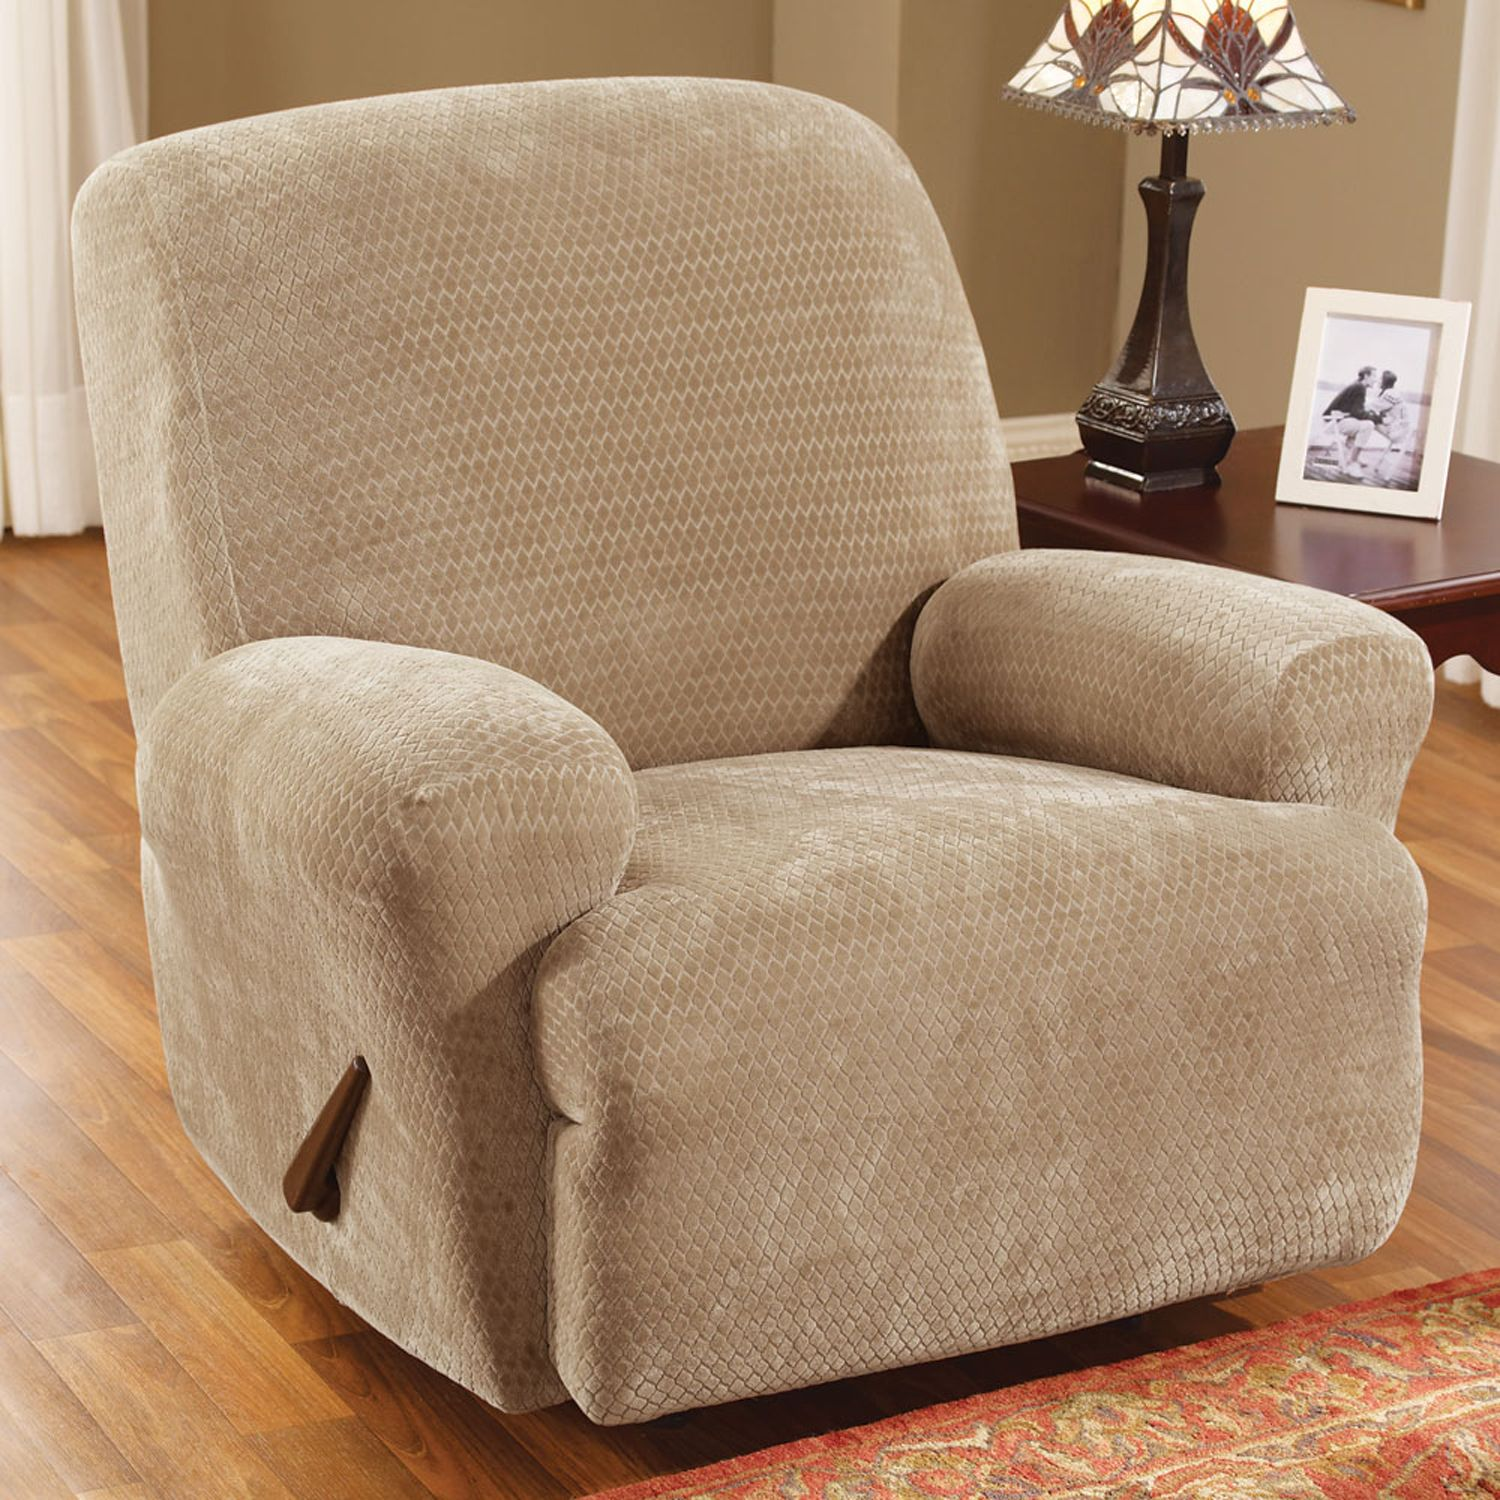 Sure Fit™ Royal Diamond Recliner Slipcover & Fit™ Royal Diamond Recliner Slipcover islam-shia.org